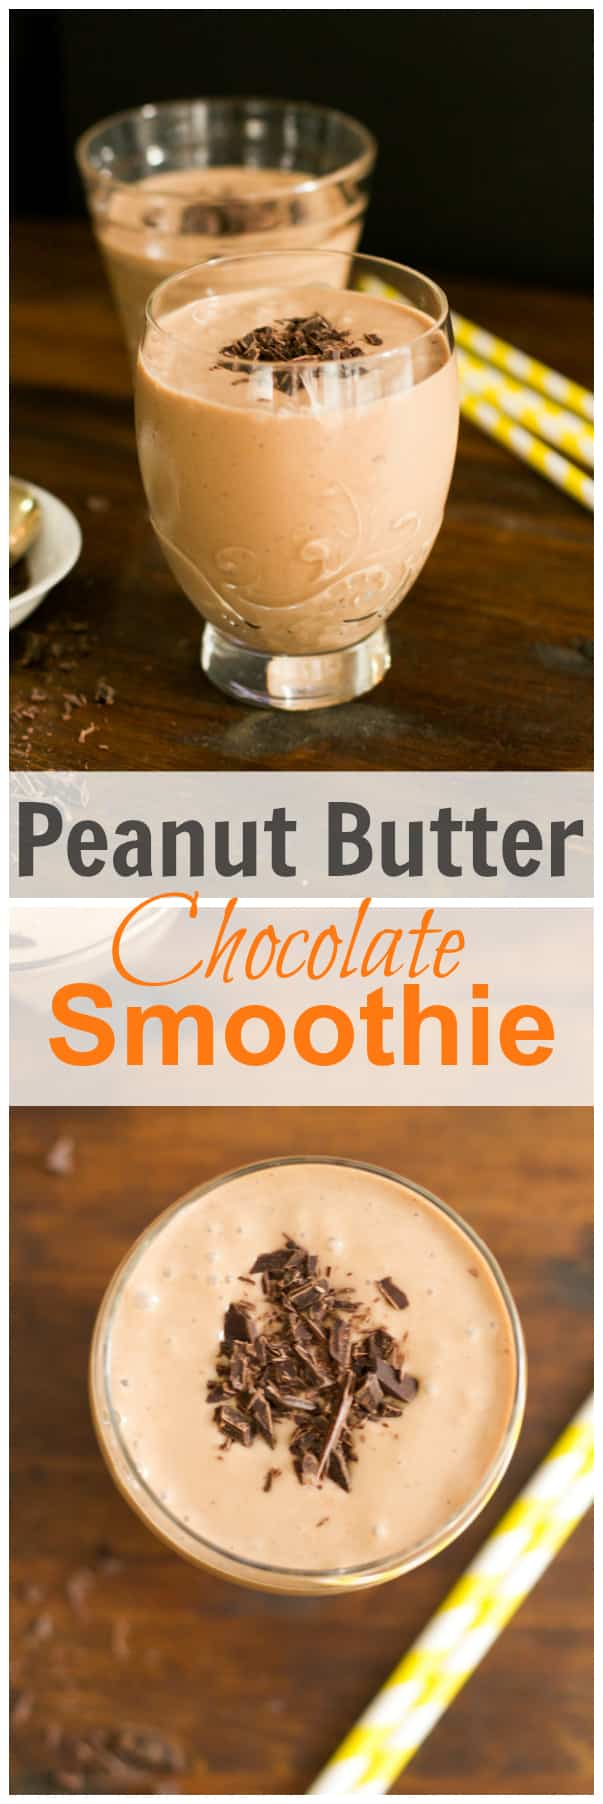 peanut butter chocolate smoothie1